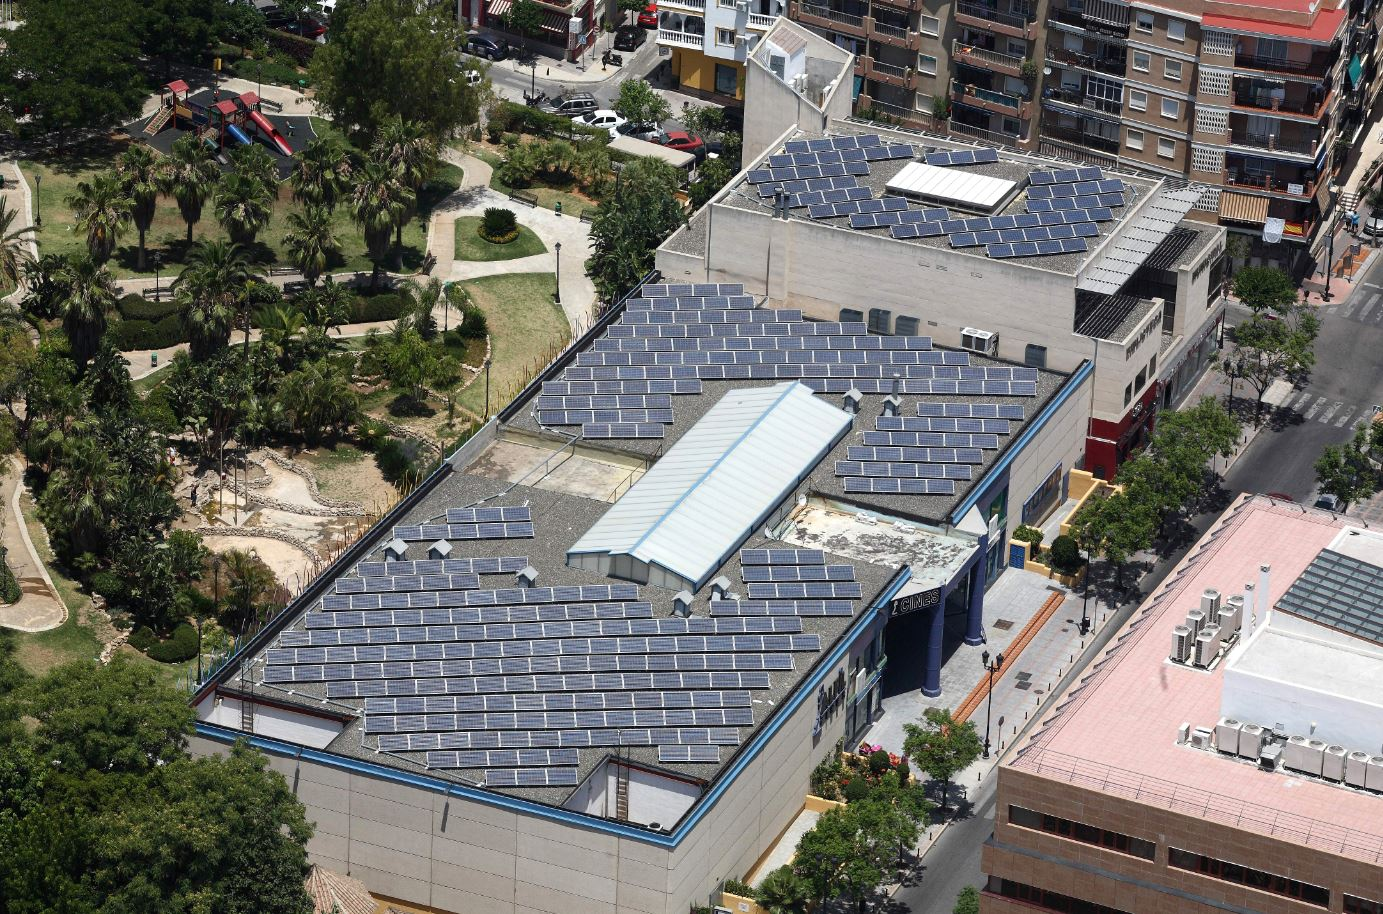 Fuengirola municipal roofs concession for the construction and operation of photovoltaic facilities